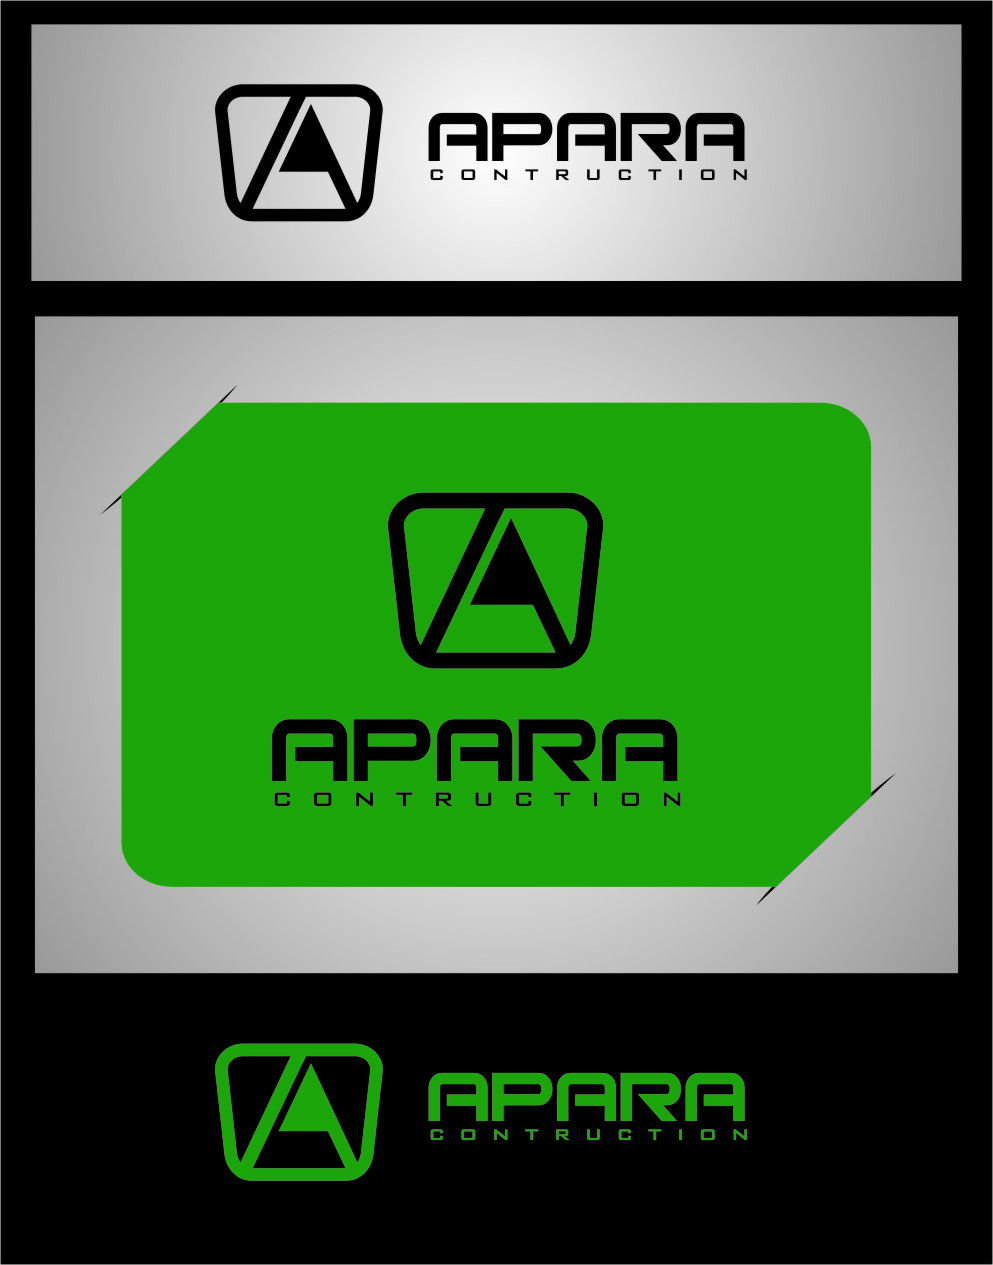 Logo Design by RasYa Muhammad Athaya - Entry No. 182 in the Logo Design Contest Apara Construction Logo Design.